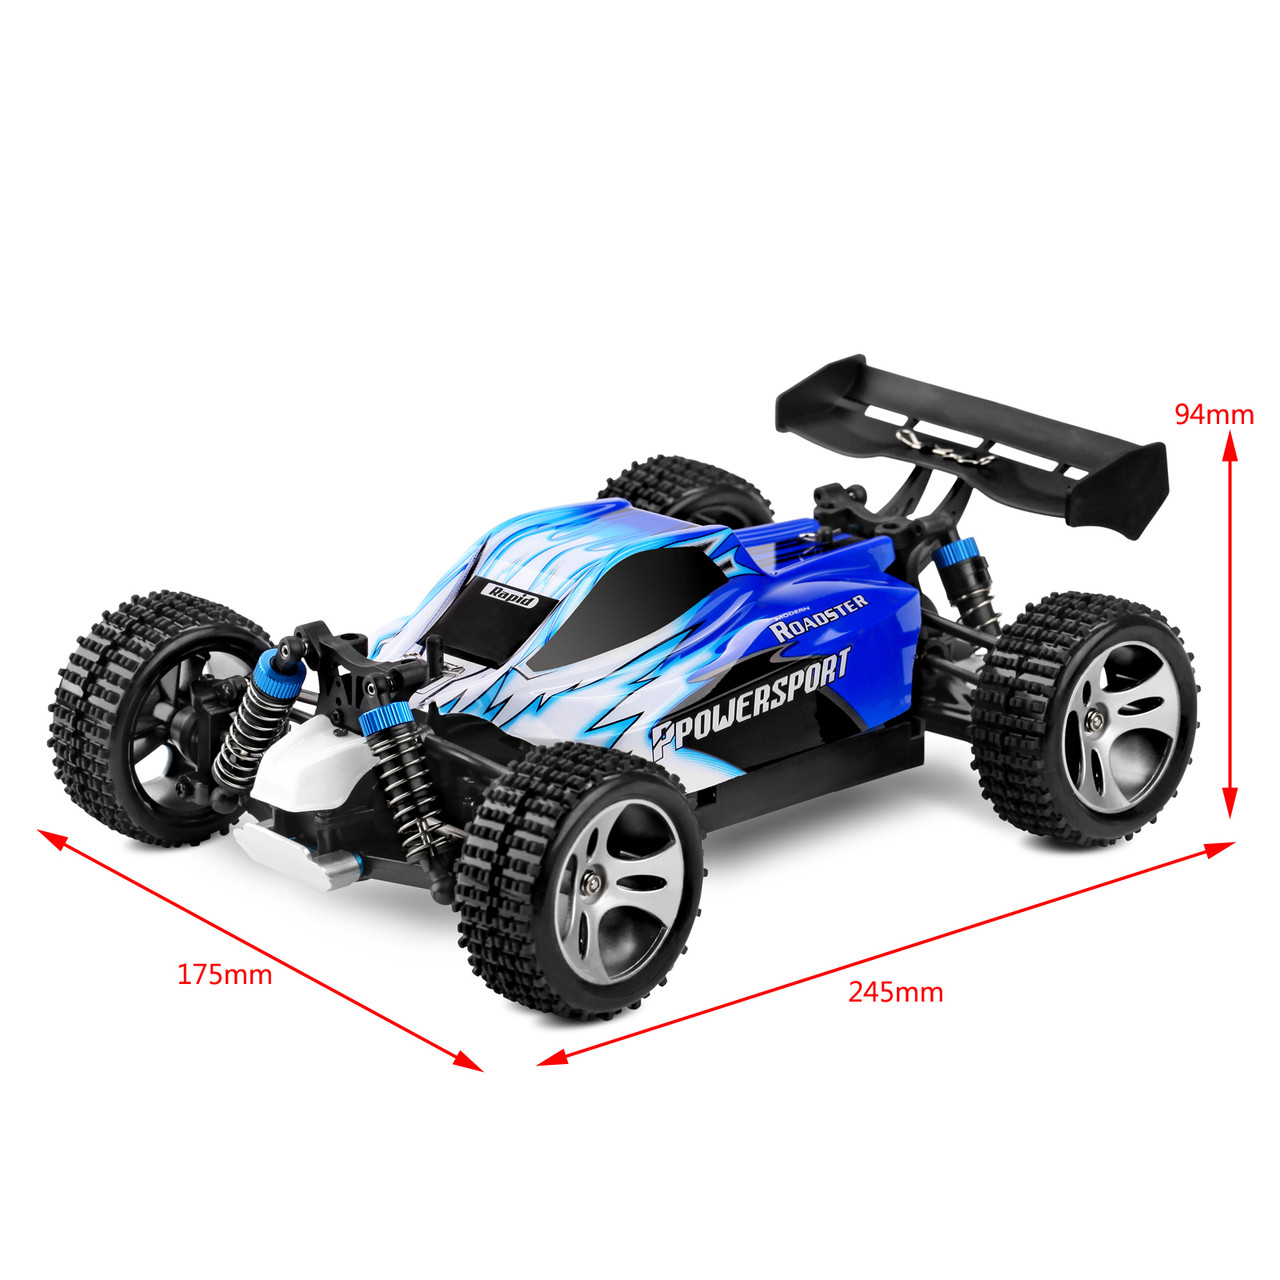 Wltoys A959 1/18 Scale 2.4G 4WD RTR Off-Road Buggy Electric RC Car Blue